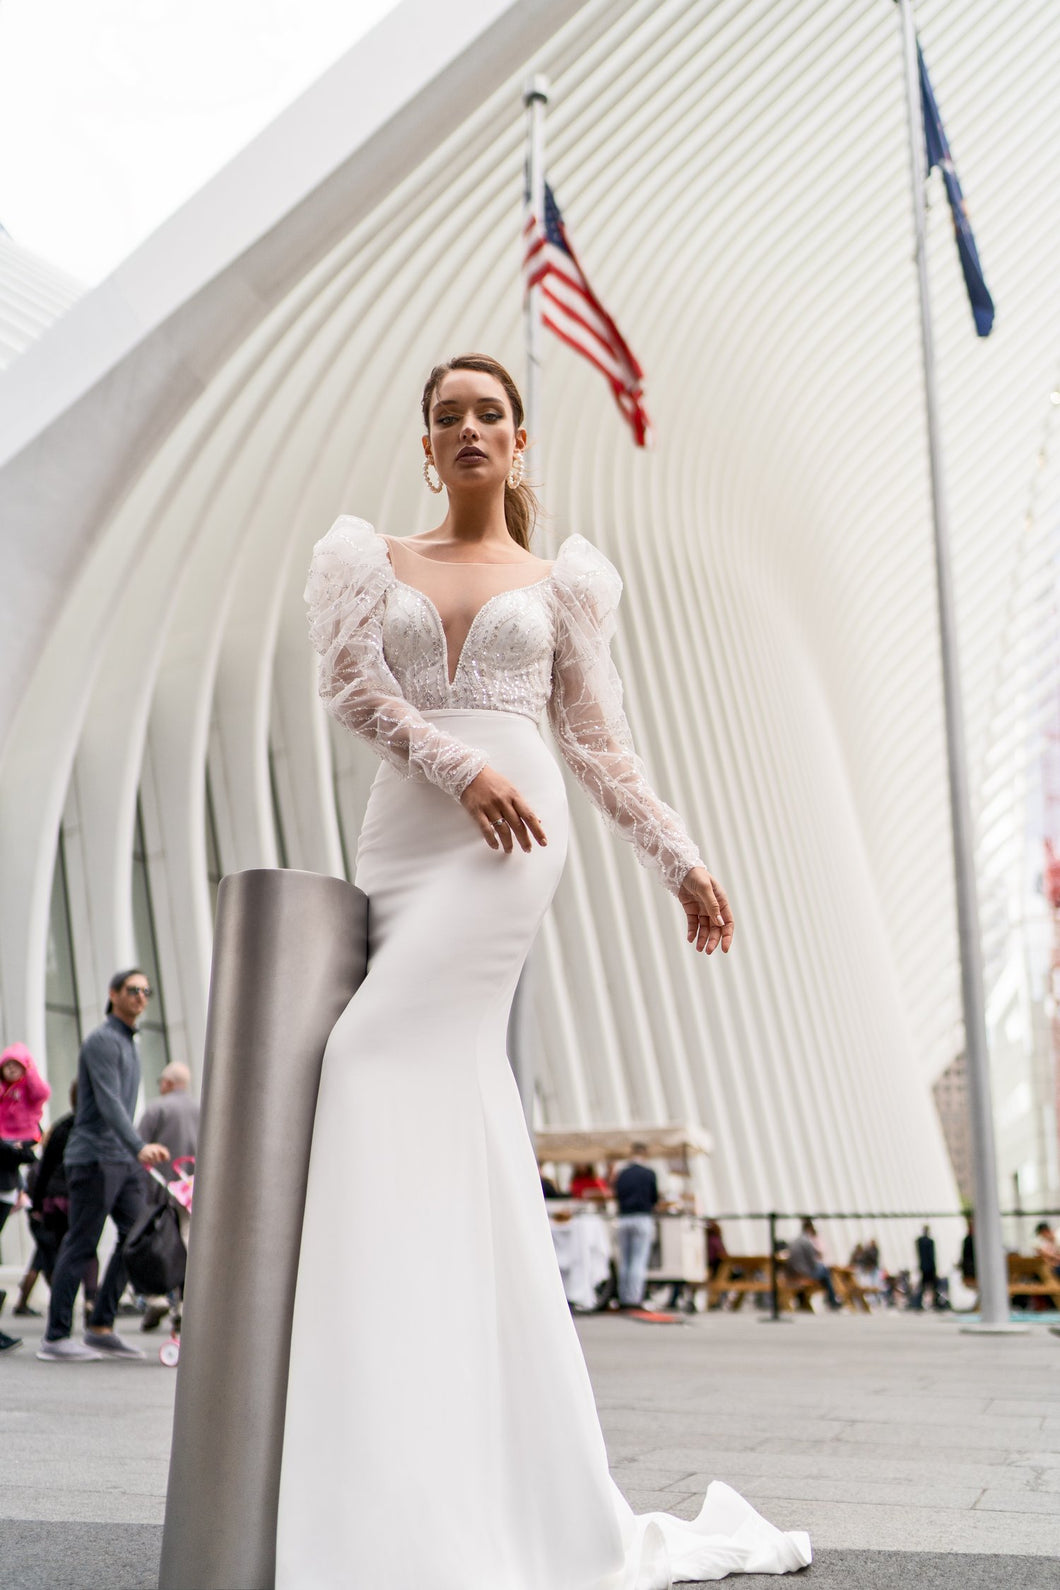 NYC 'Bonnie' Elly Haute Couture RTW 063-480 Ready To Wear European Bridal Wedding Gown Designer Philippines